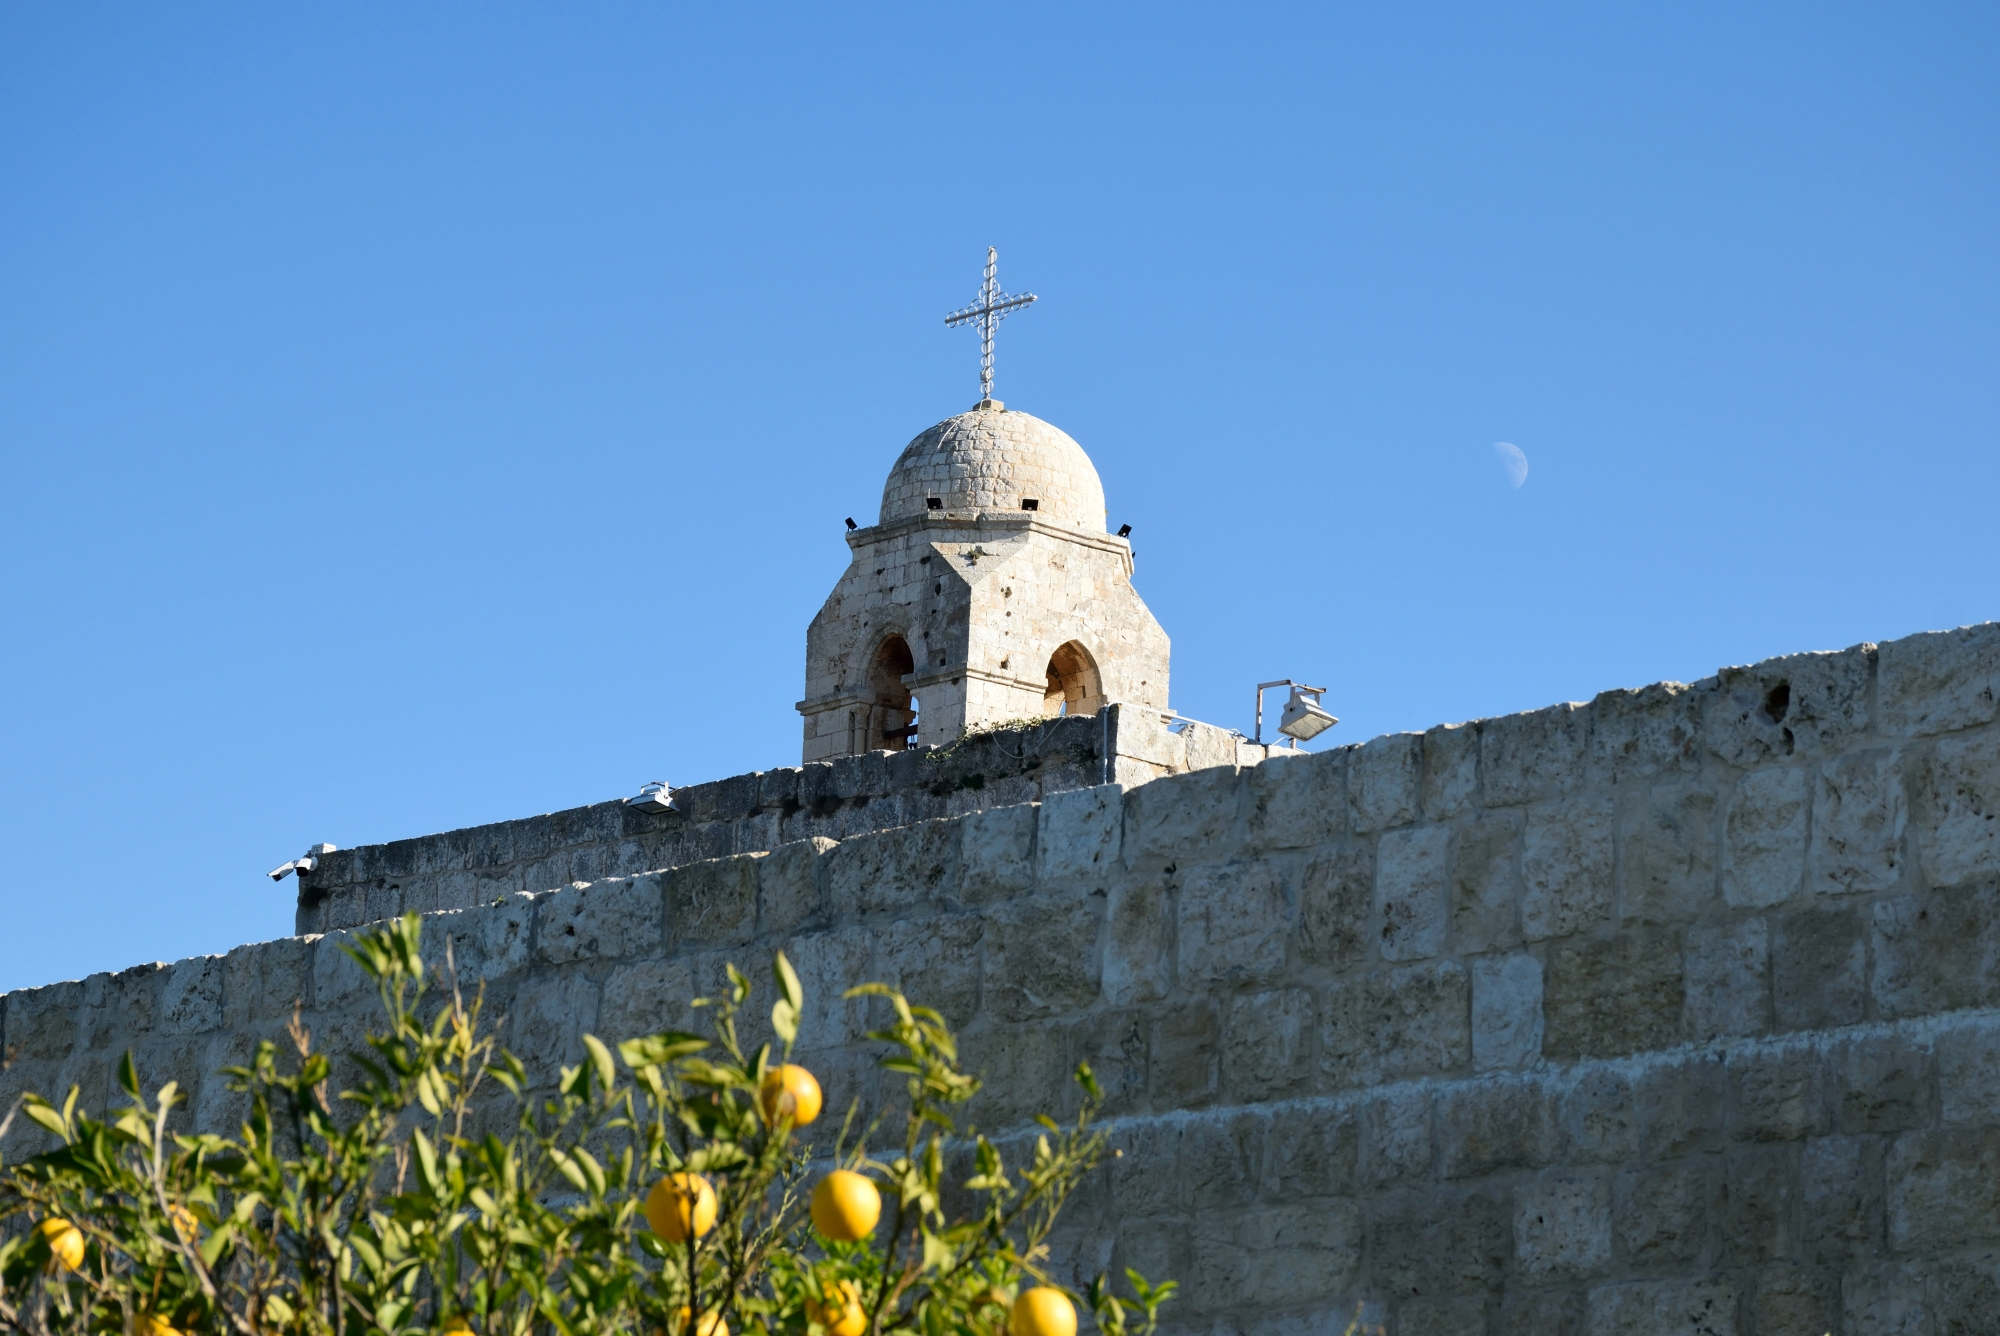 Dome of the Balamand monastery and the moon during the day